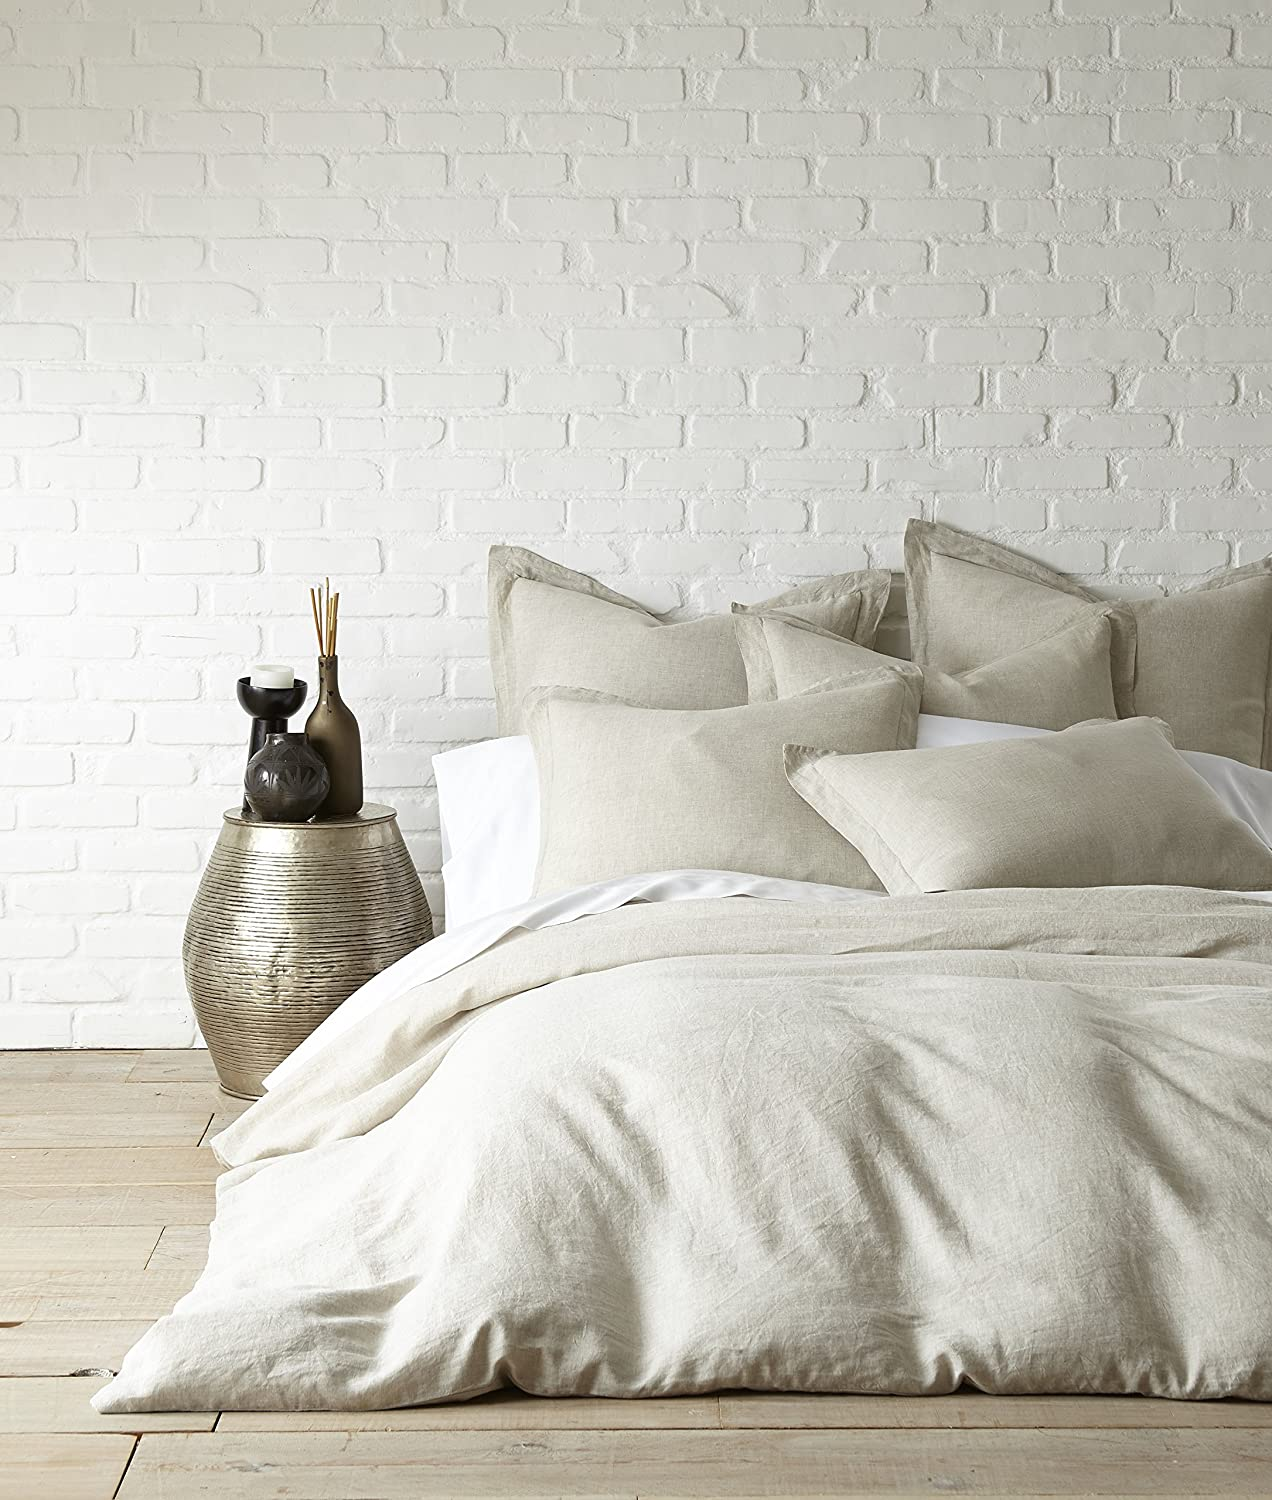 Levtex Washed Linen Blush Twin Duvet Cover